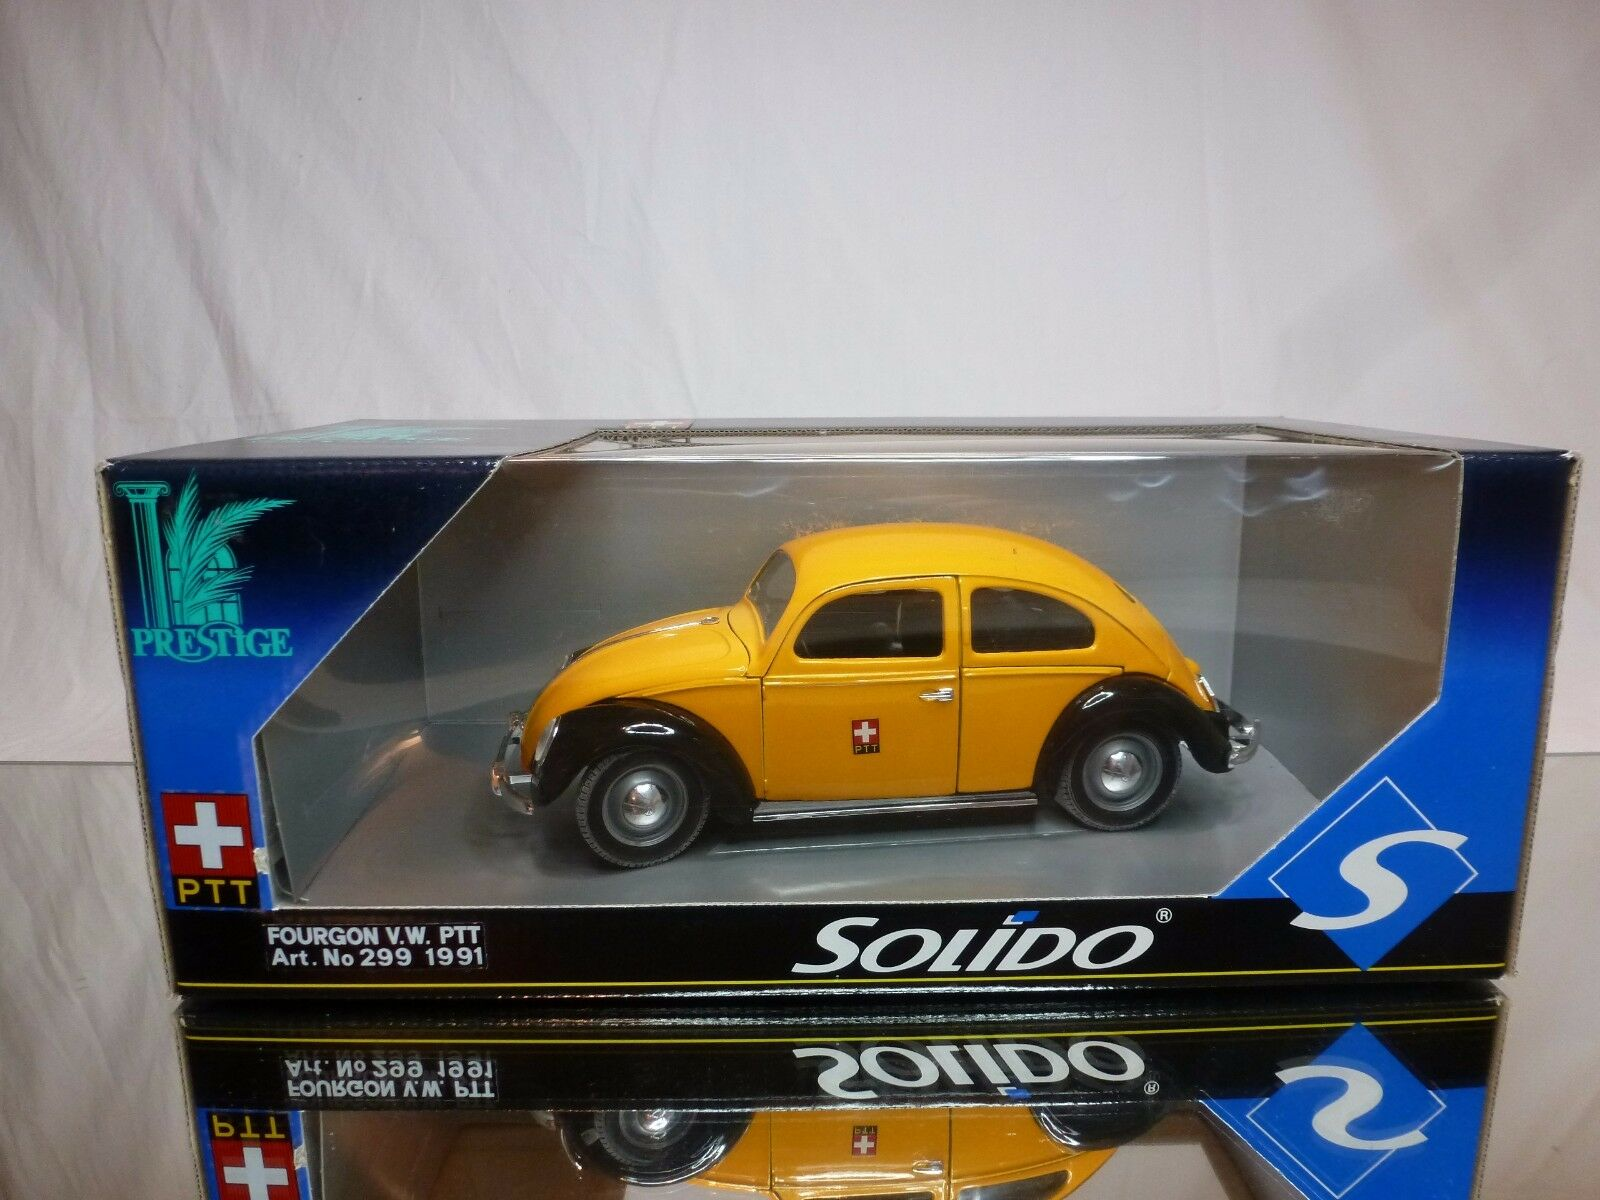 SOLIDO PRESTIGE 299 VW VOLKSWAGEN BEETLE SPLIT - PTT SCHWEIZ 1 18 - GOOD IN BOX